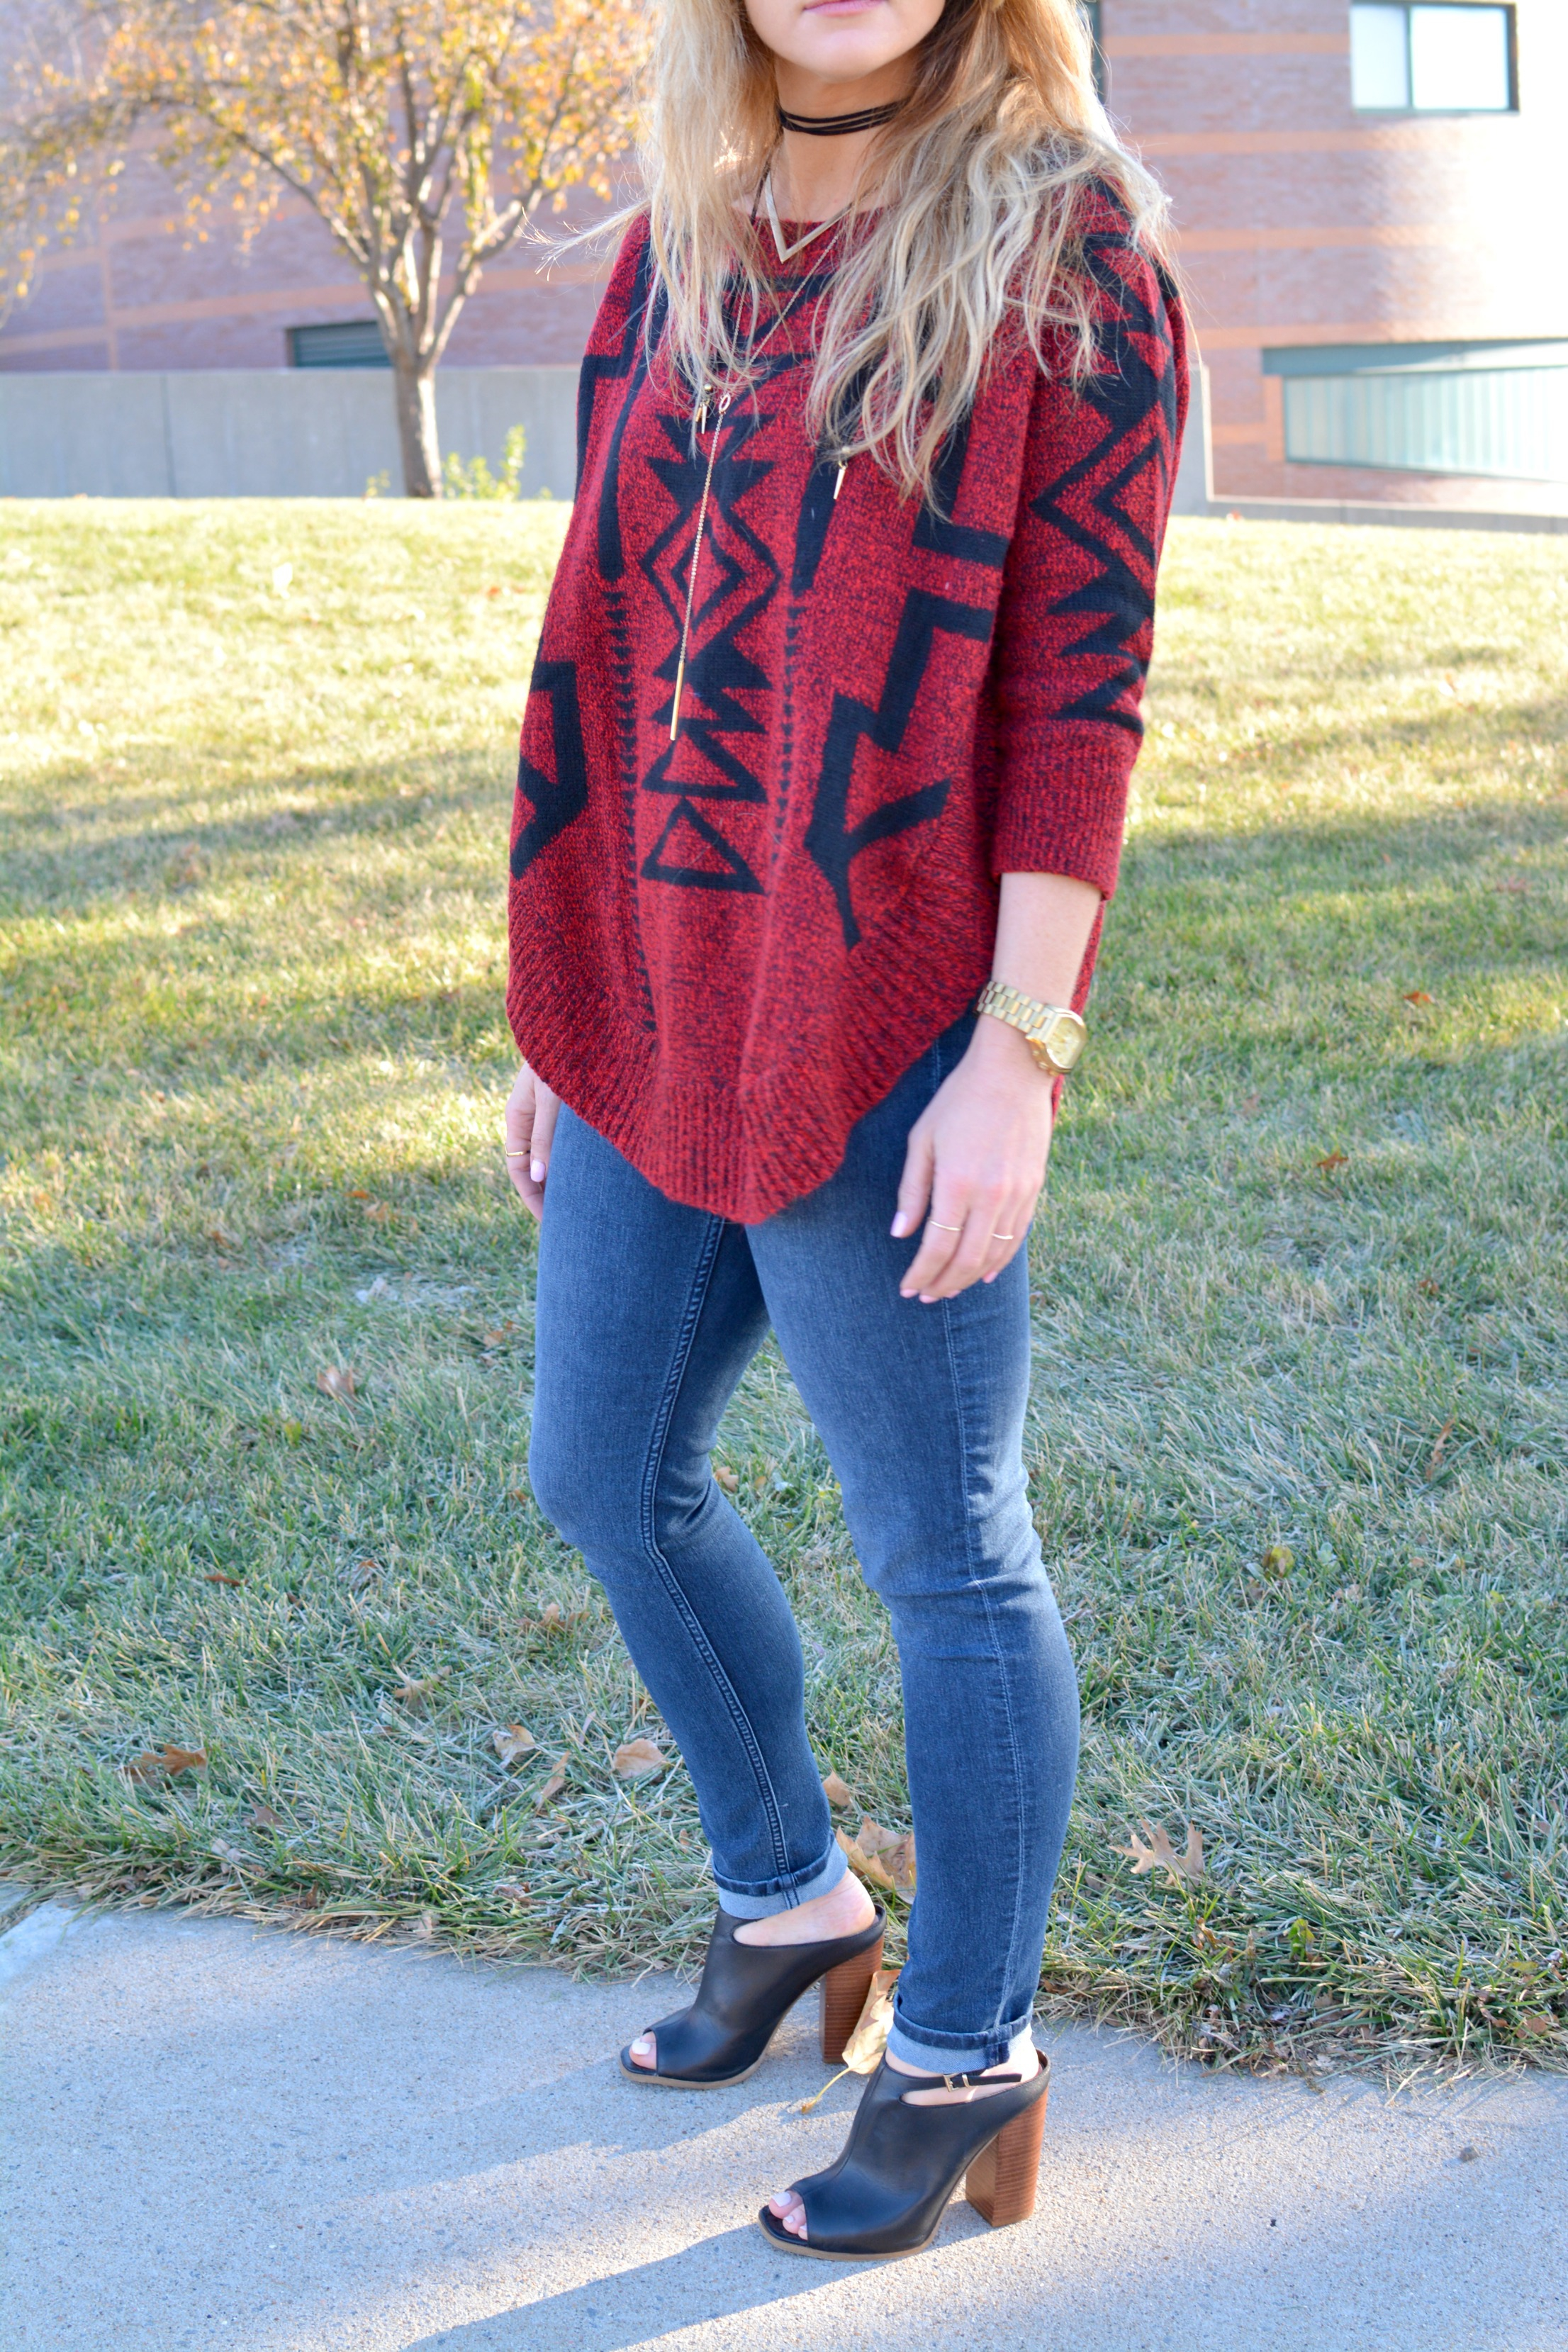 Ashley from LSR in a red and black sweater with leather mules